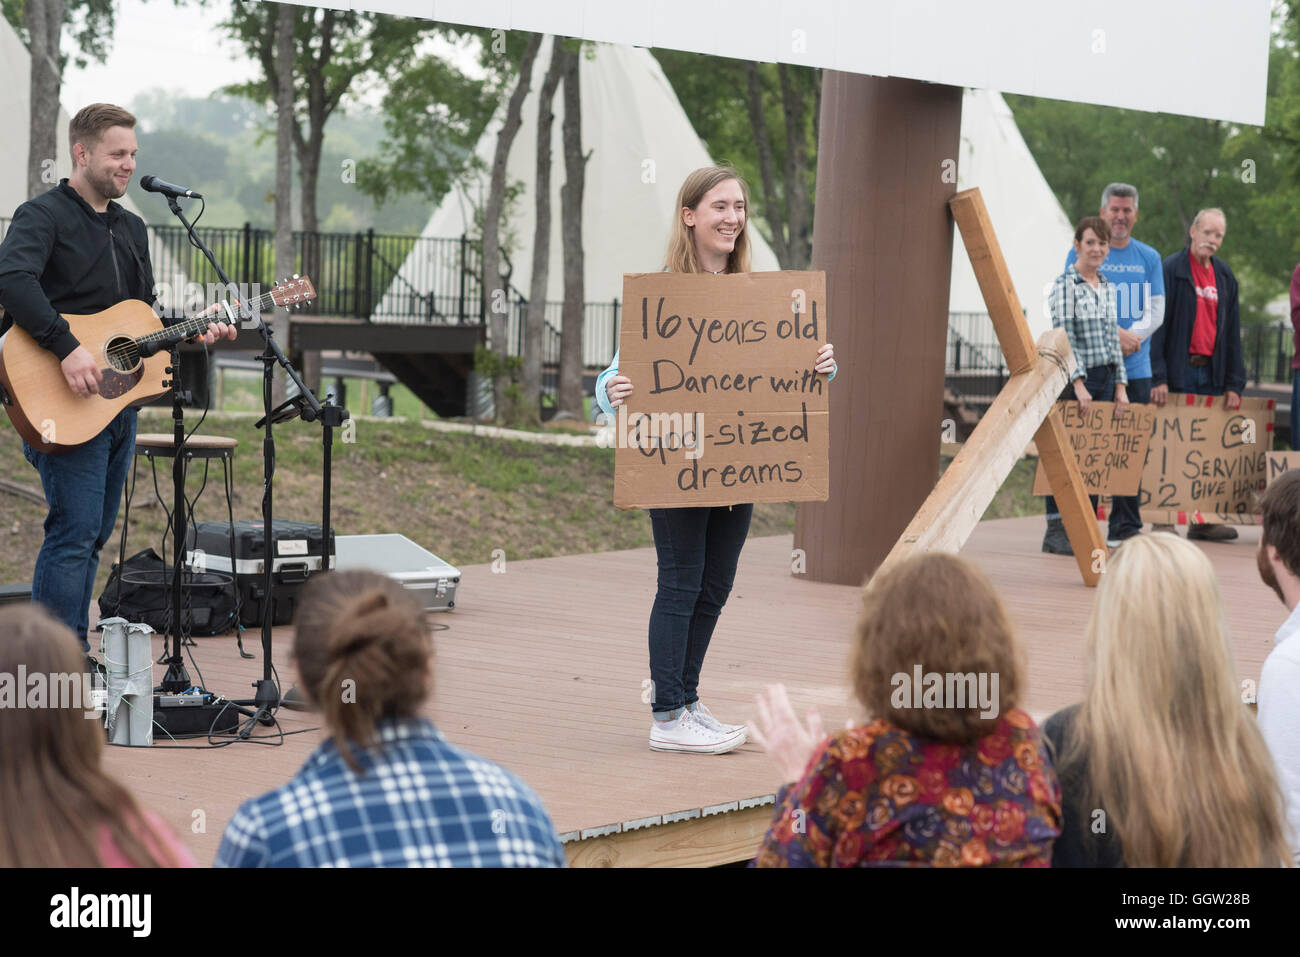 Participants in contemporary Easter service display their faith testimonies on cardboard signs at Community First! - Stock Image